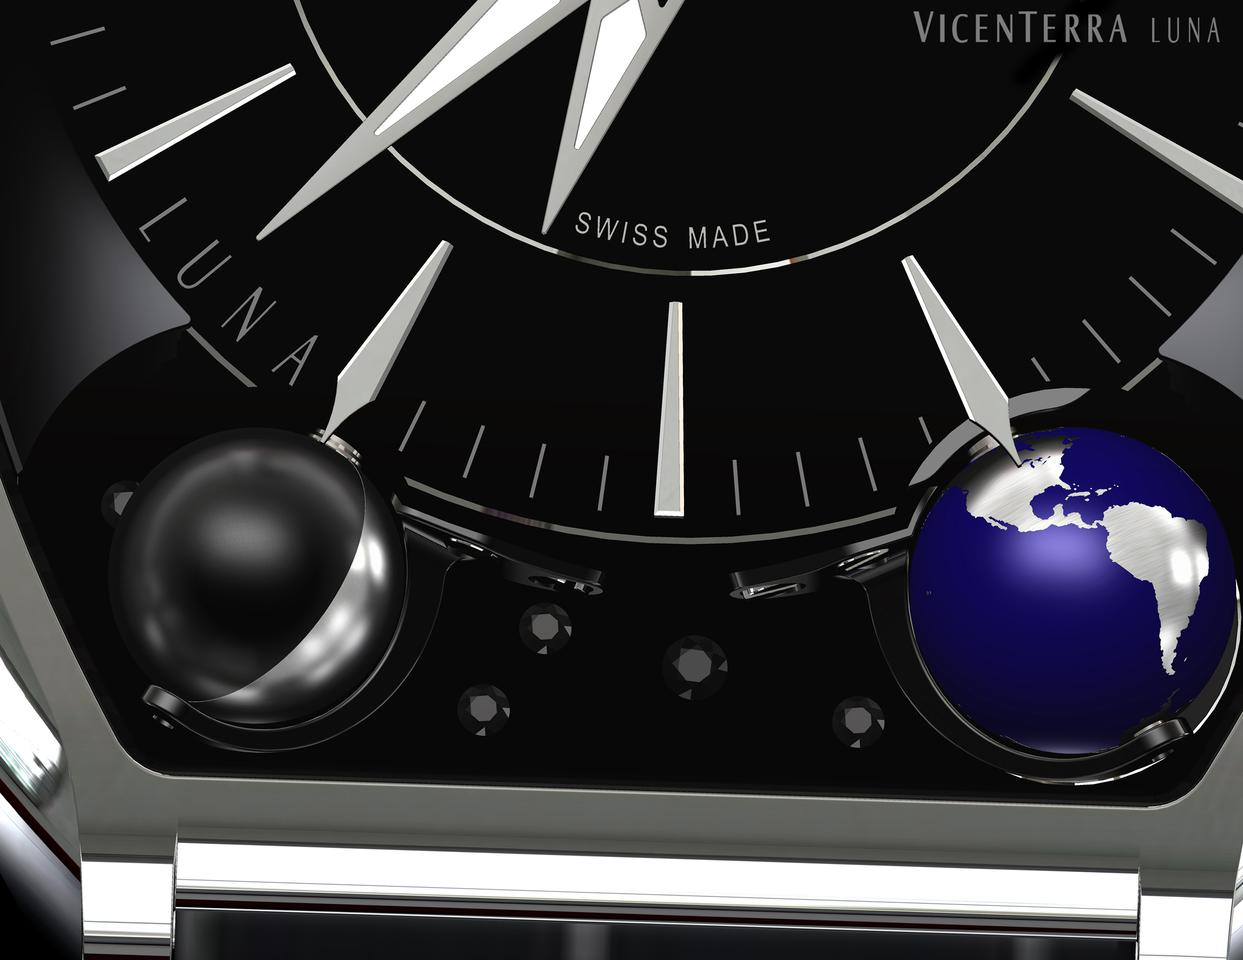 The Vicenterra Luna volume 1 shows the Earth and Moon as solid globes